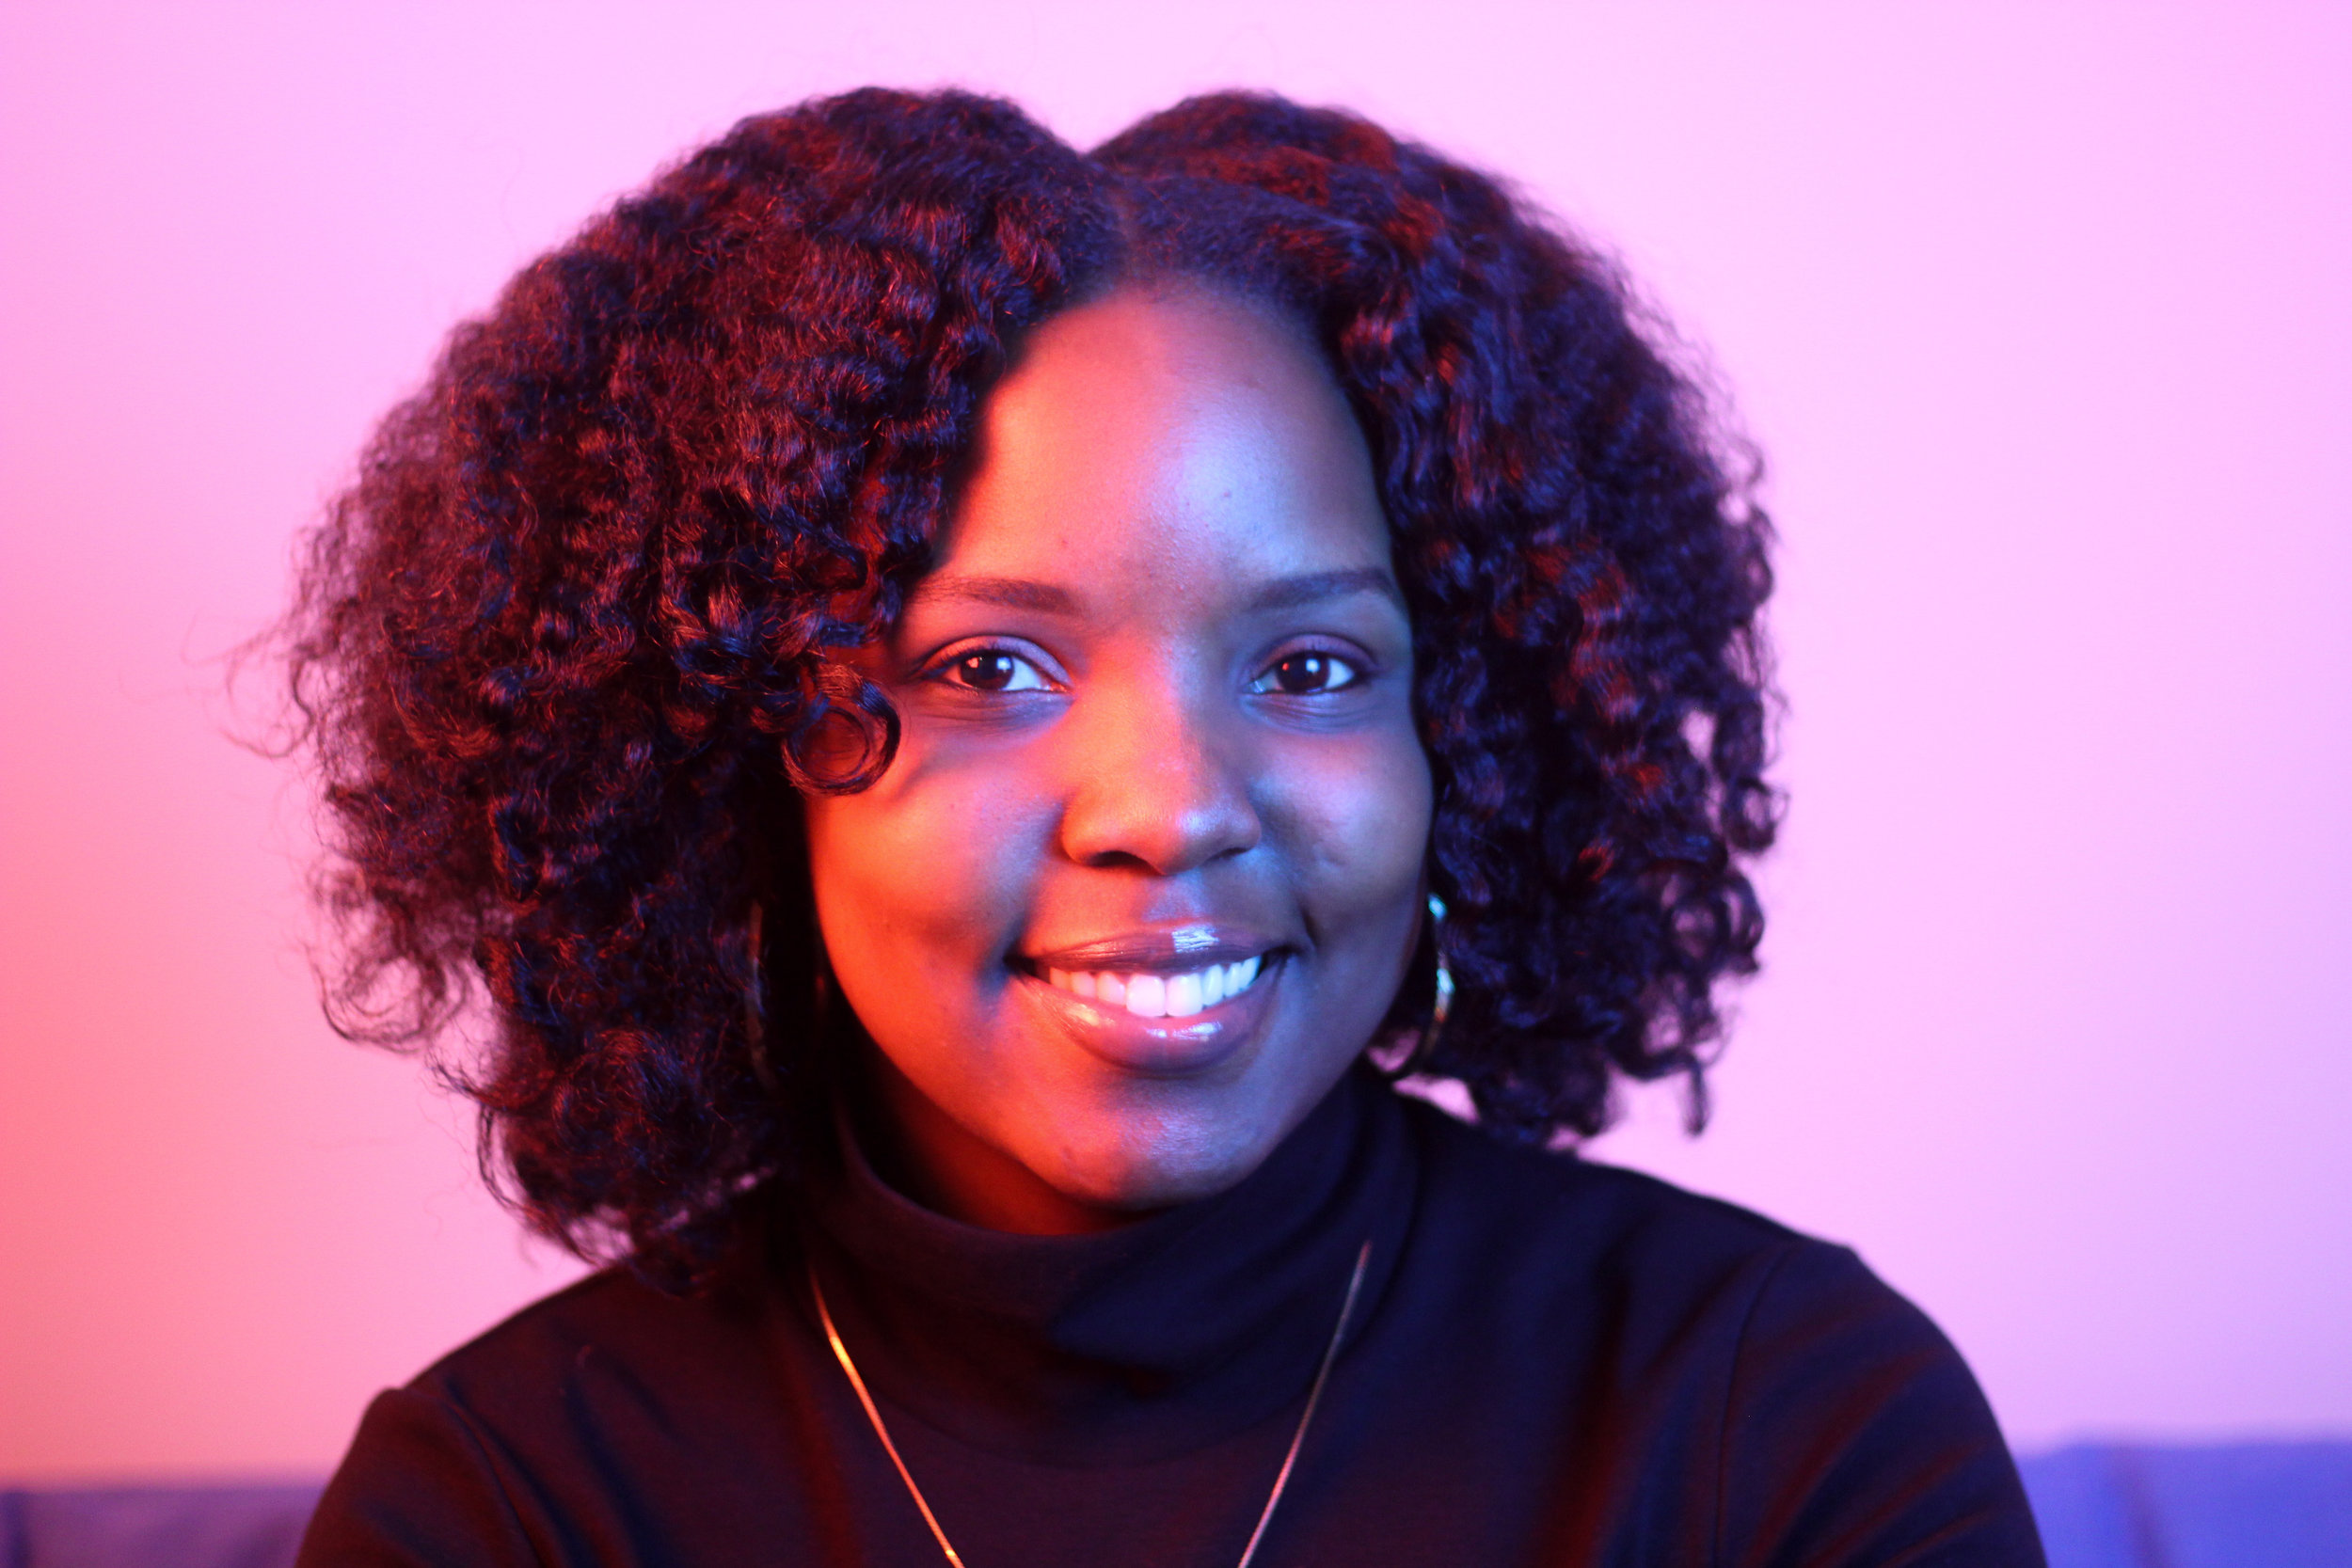 jacquelyn green - Age: 27What do you do? I put people of color on to professional opportunities in advertising, creative and comms related industries.Who is a woman around your age that is an inspiration to you and why? I have a few! Gia Peppers, Imani Ellis of The CCNYC, Morgan Peterson and Anuli Akanegbu. All of these women have created their own lane and they own it both creatively and effortlessly. They embody staying true to themselves, while leveling up and giving back to their community.Instagram: @Jackie_Tayler